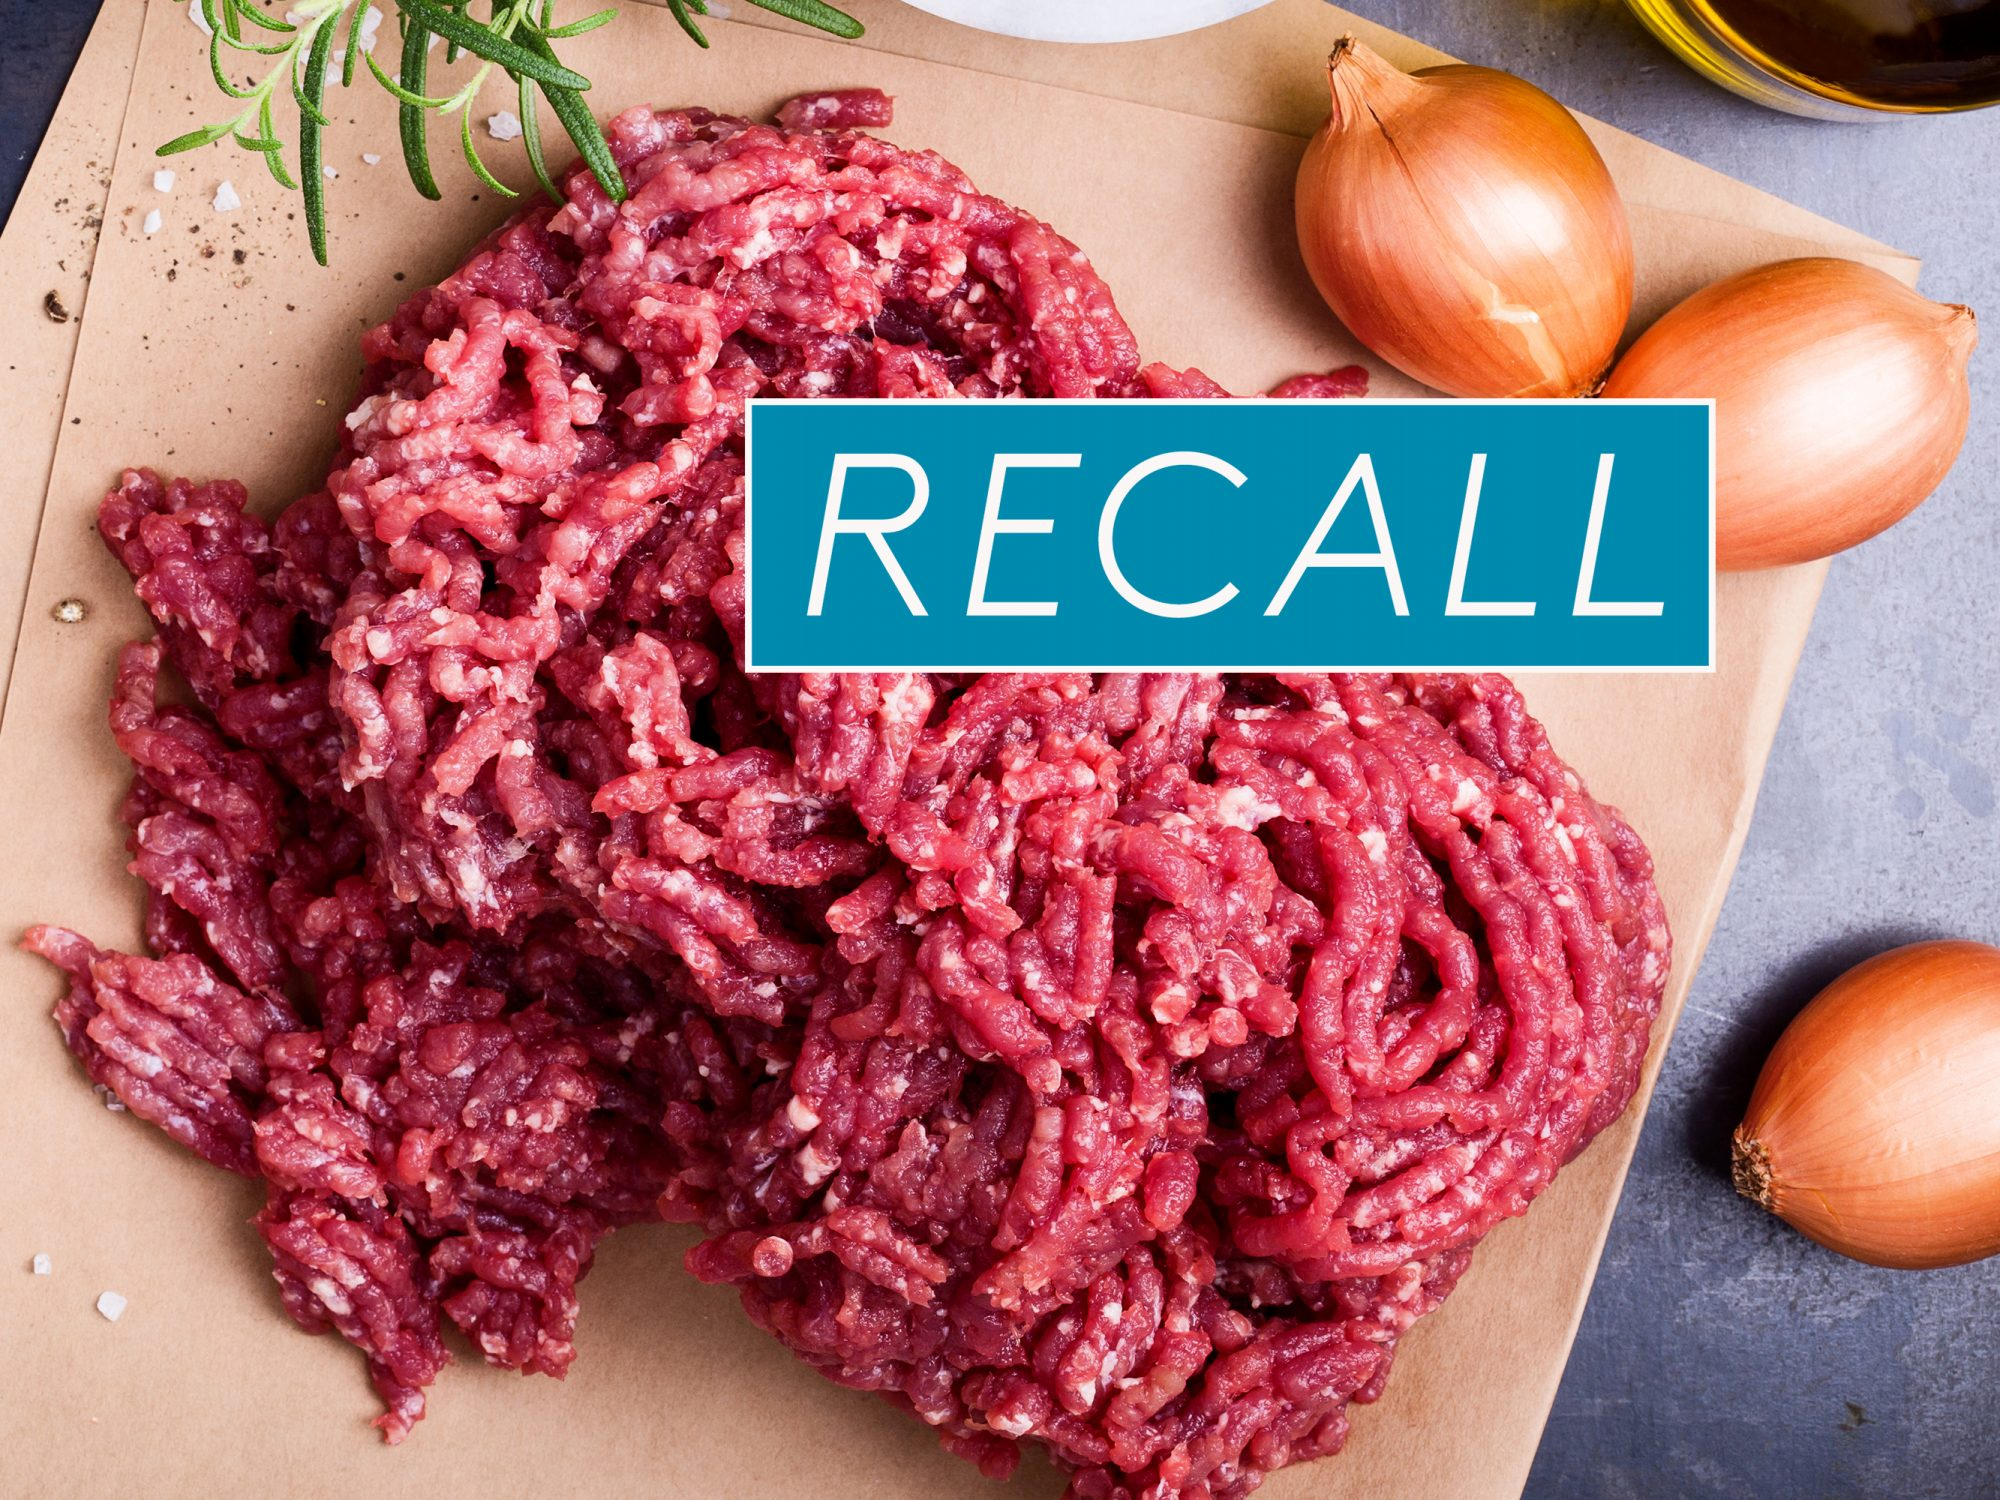 ground beef with recall logo